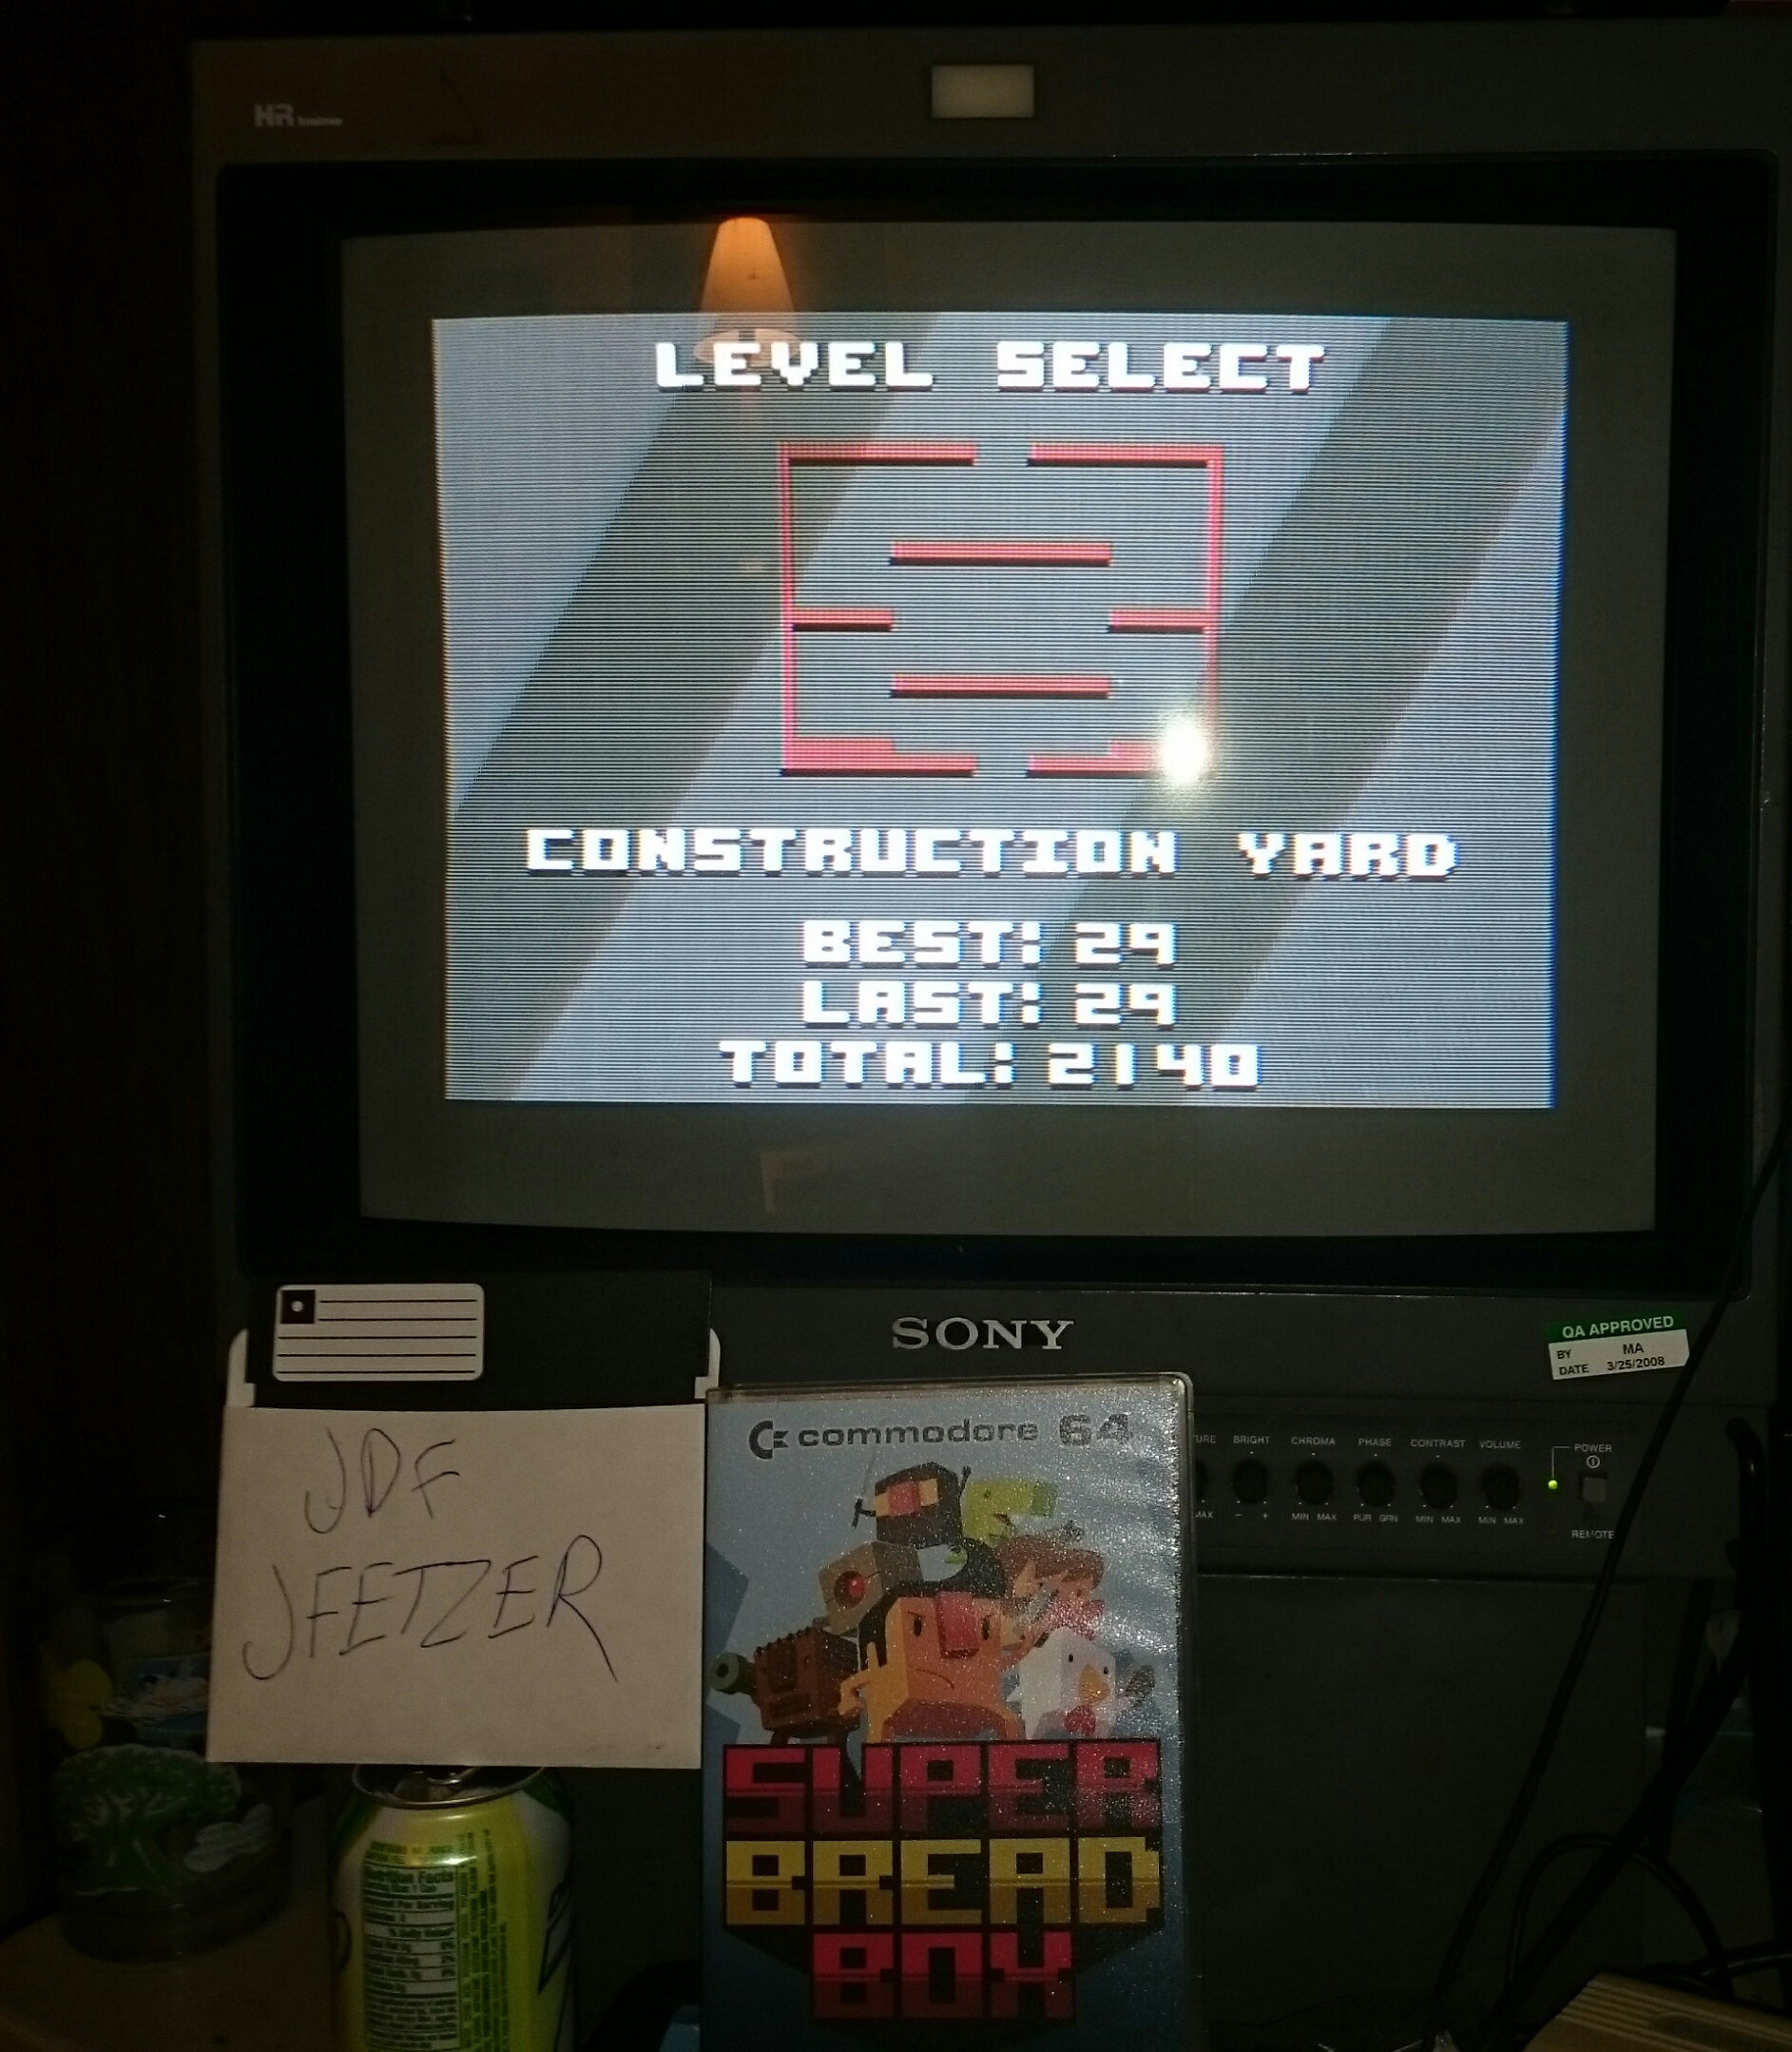 jfetzer: Super Bread Box: Construction Yard (Commodore 64) 29 points on 2015-06-11 23:17:53